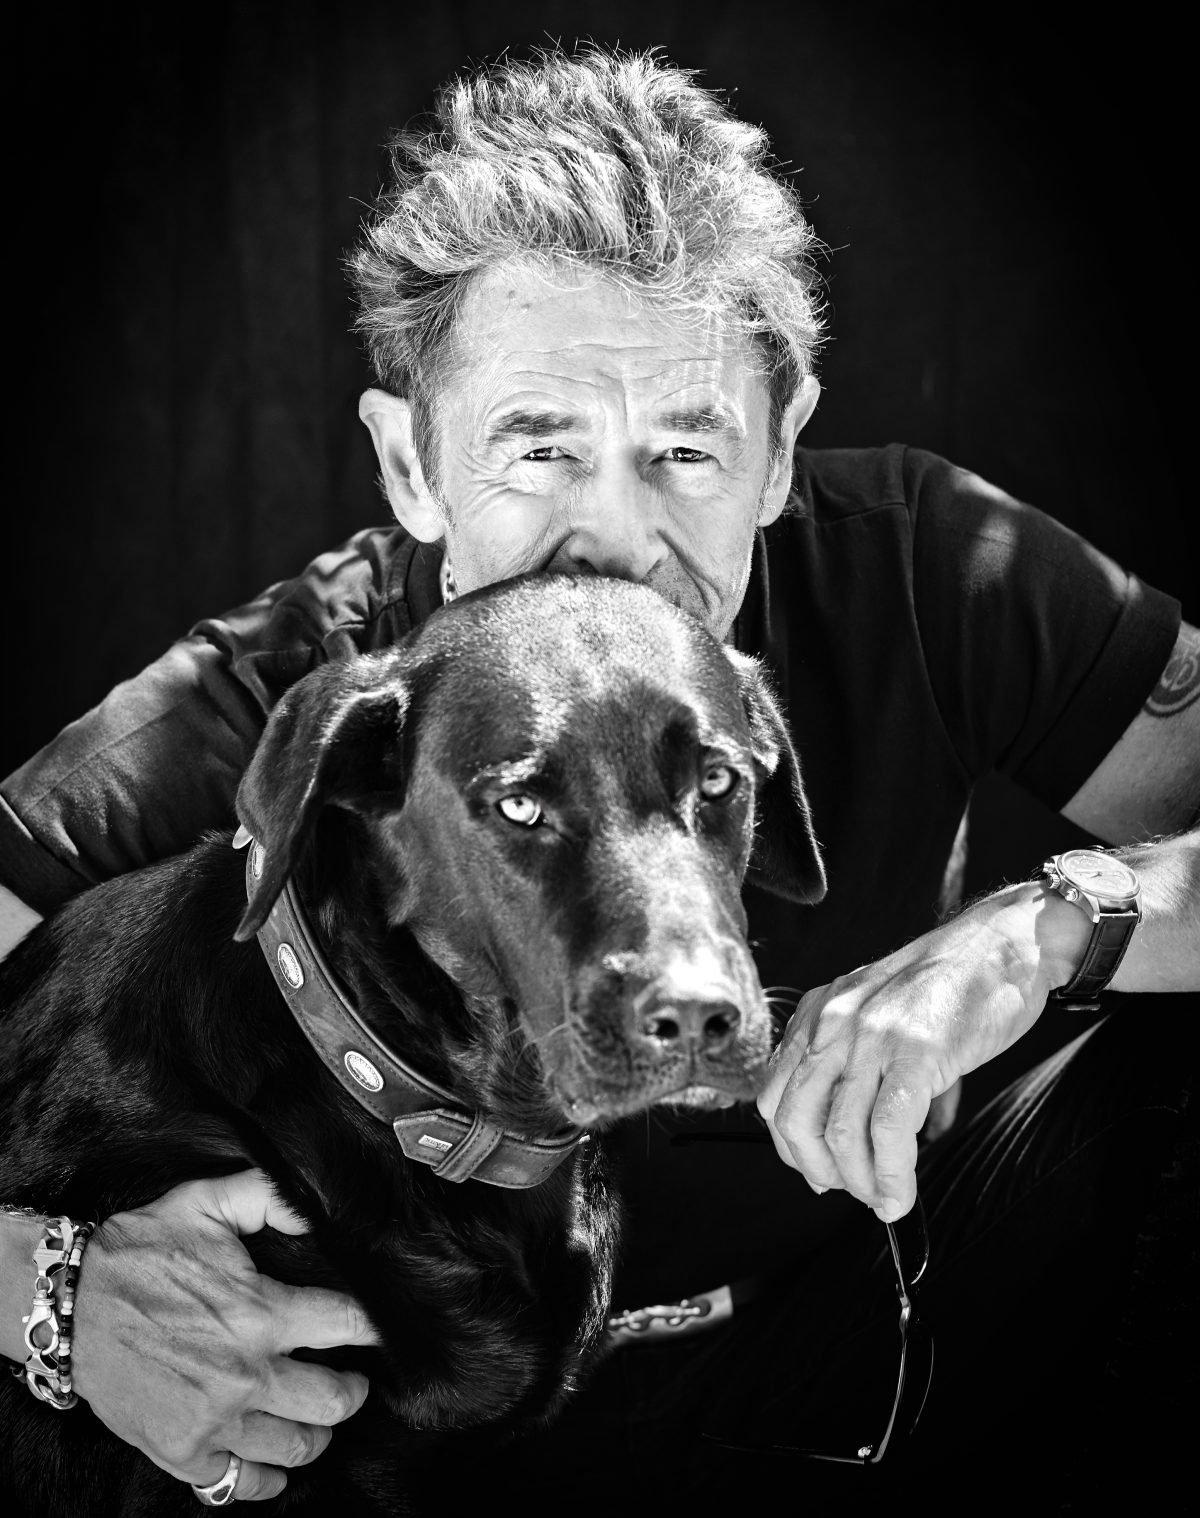 peter-maffay-fuer-mein-charity-buch-prominent-mit-hund-www.ciaogianna.de